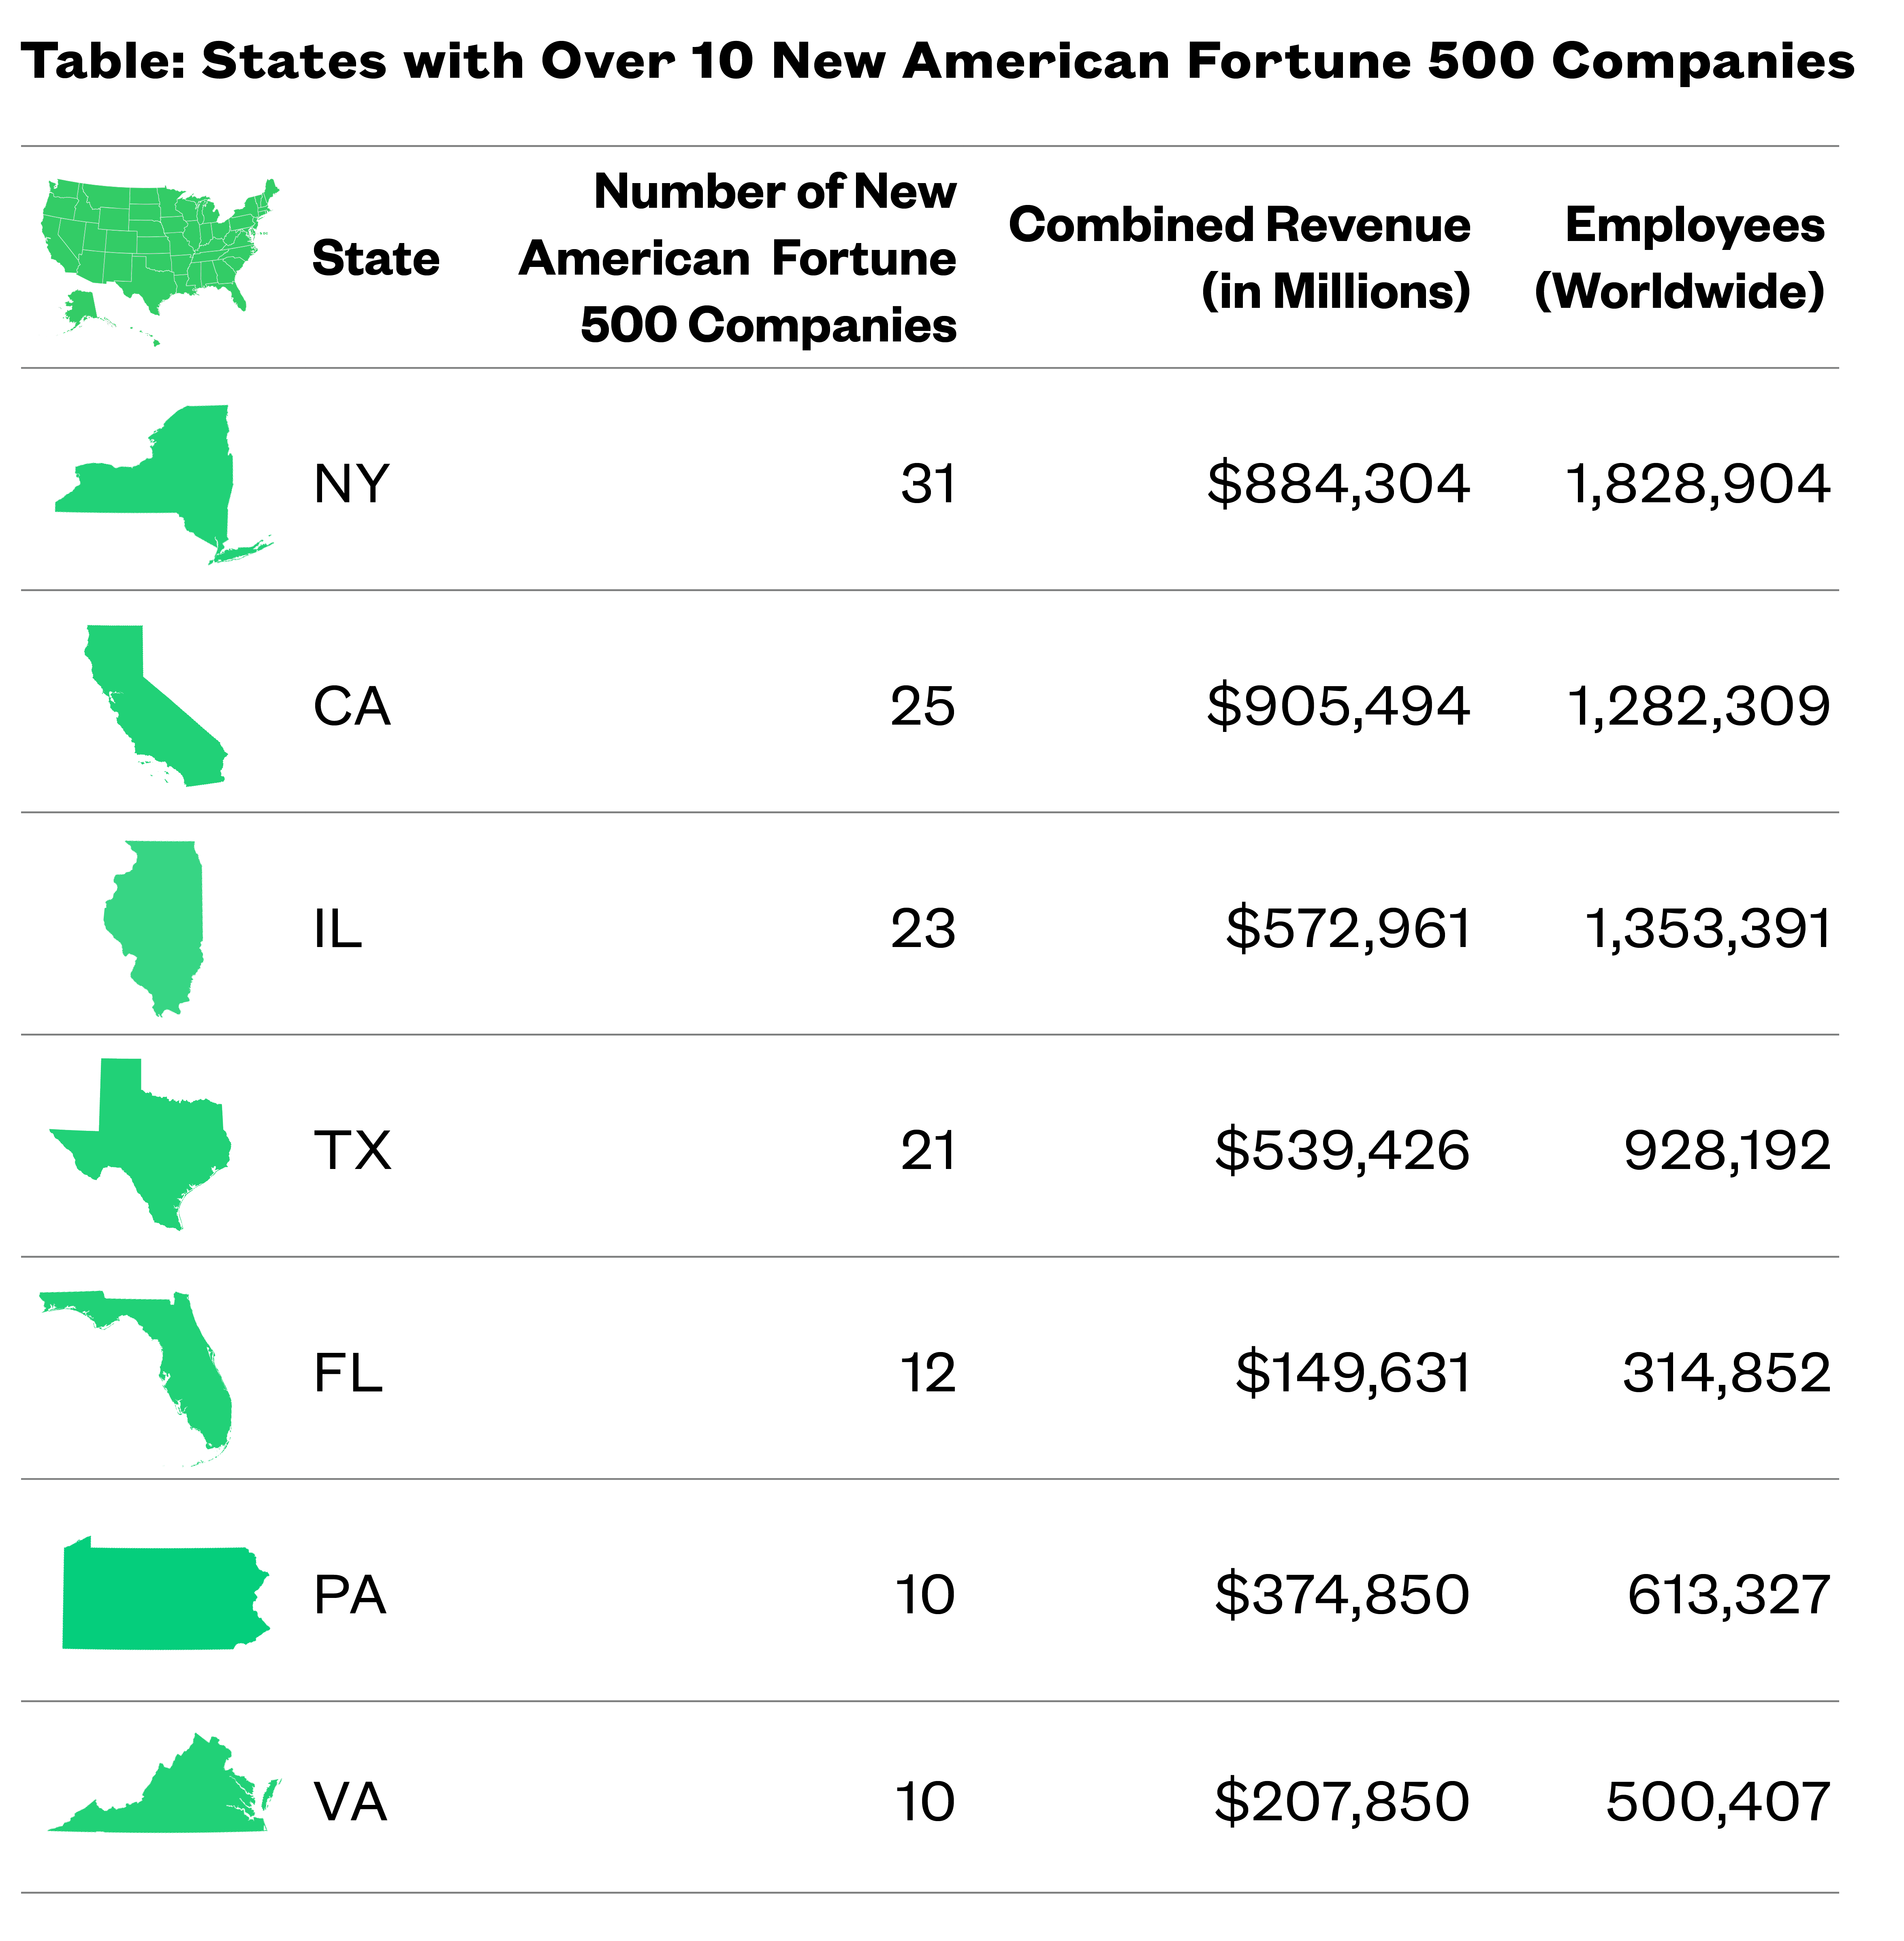 Table of States with 10 or more New American Fortune companies